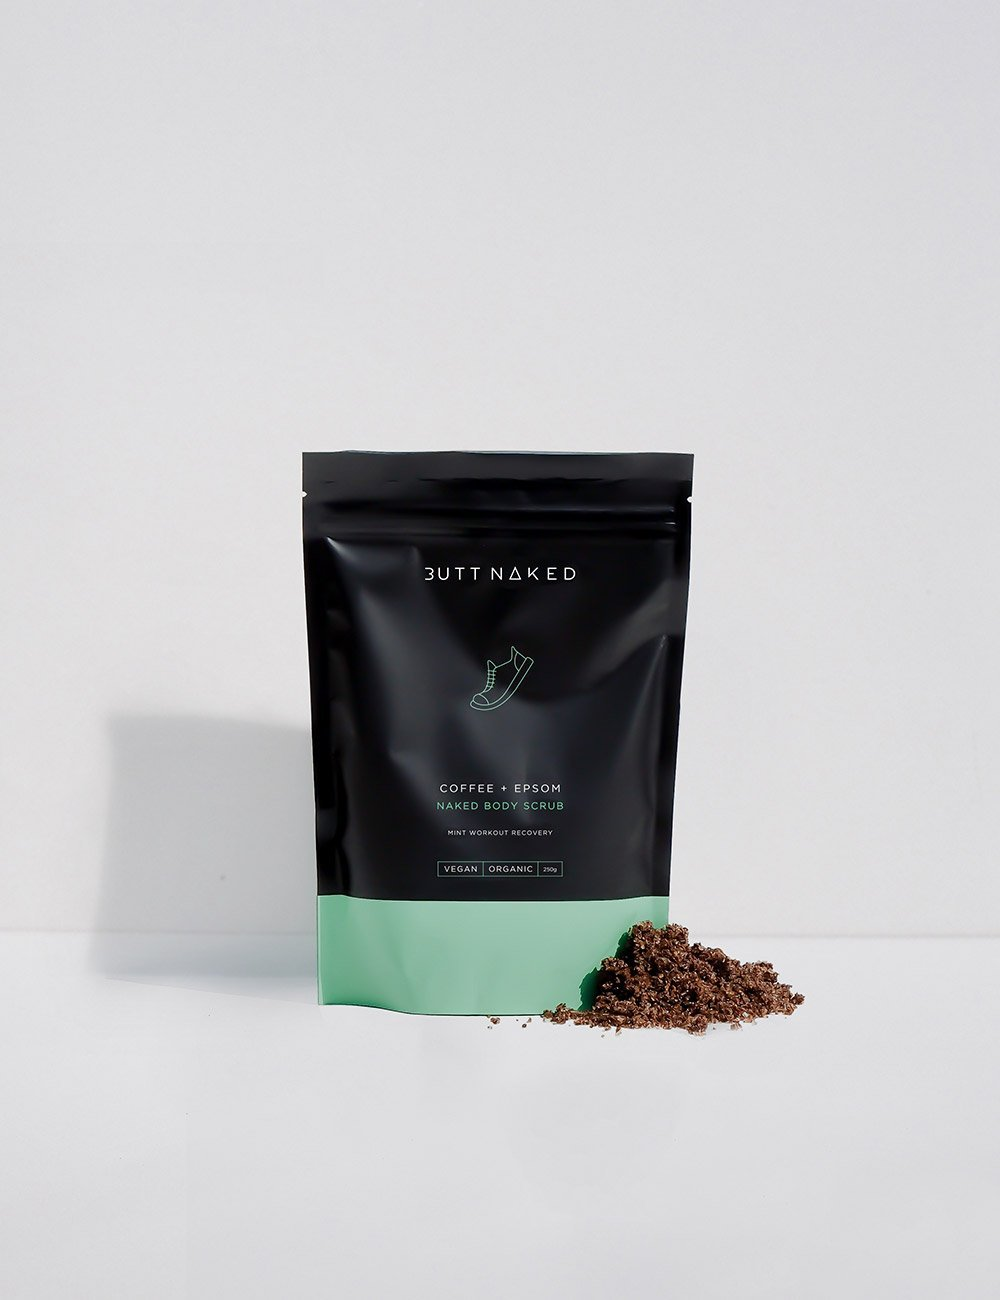 Coffee + Epsom Naked Body Scrub